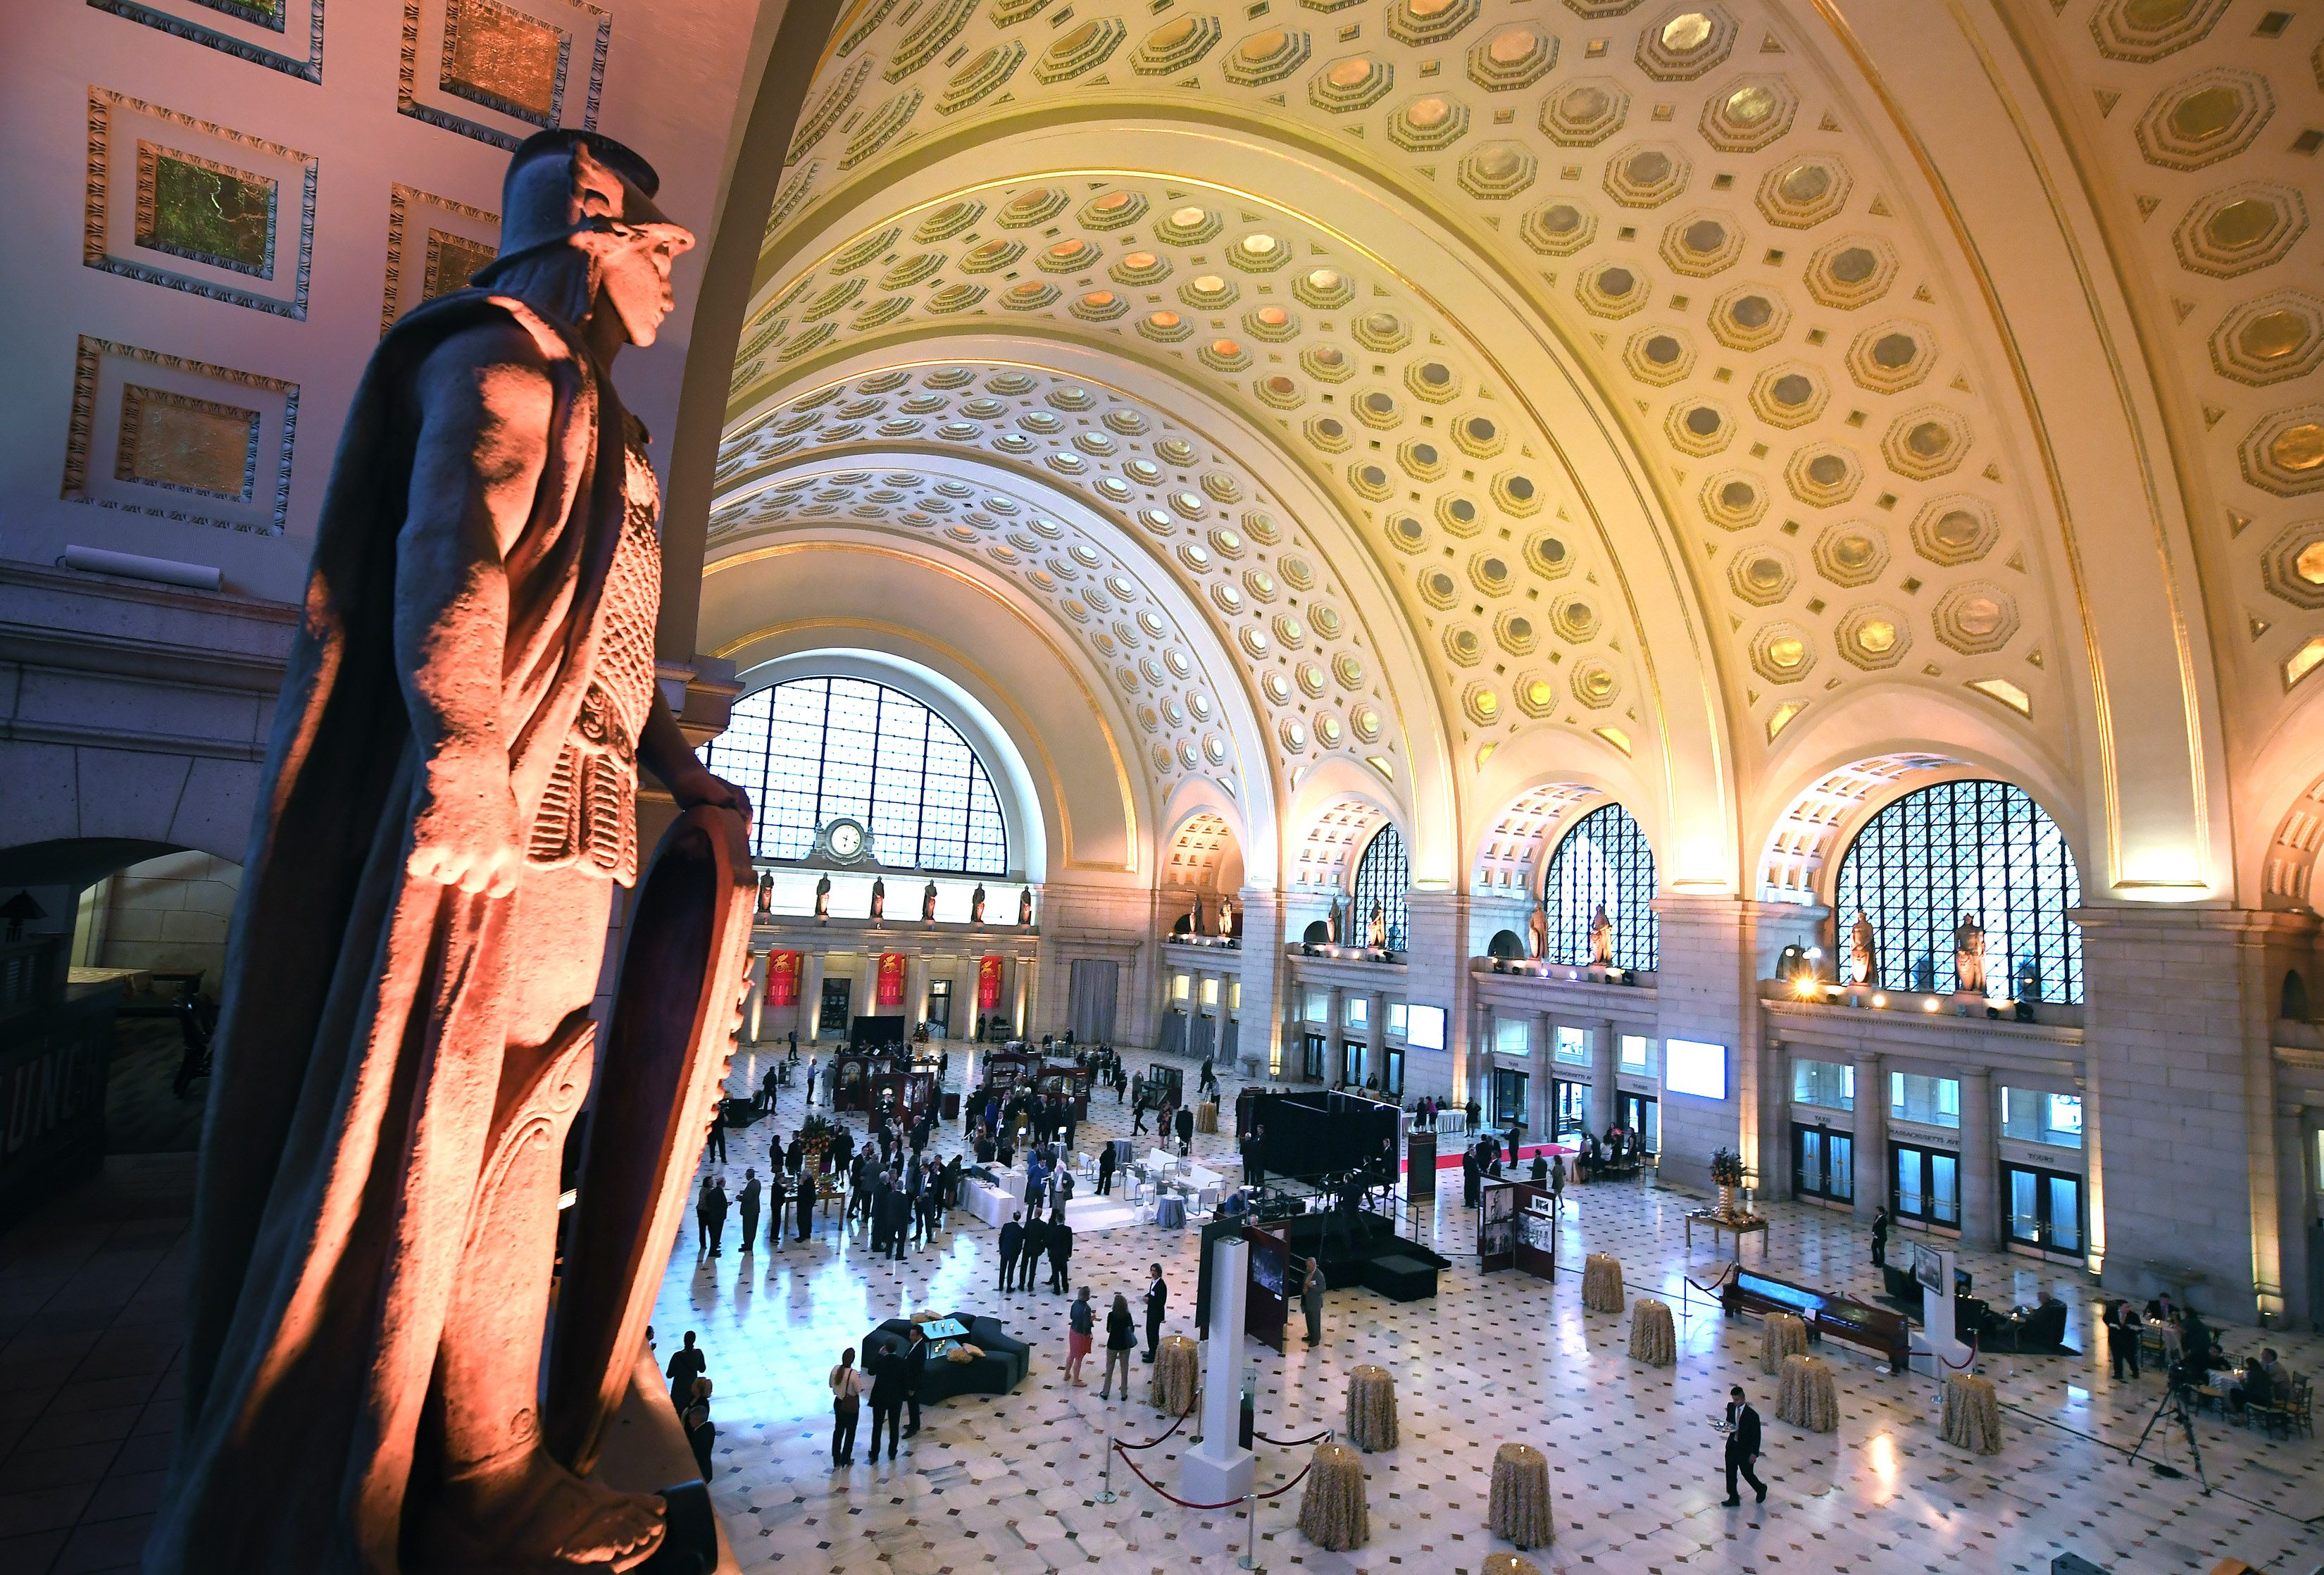 Union Station S Main Hall Has Been Restored To Its Century Old Splendor Union Station Living In Washington Dc Restoration